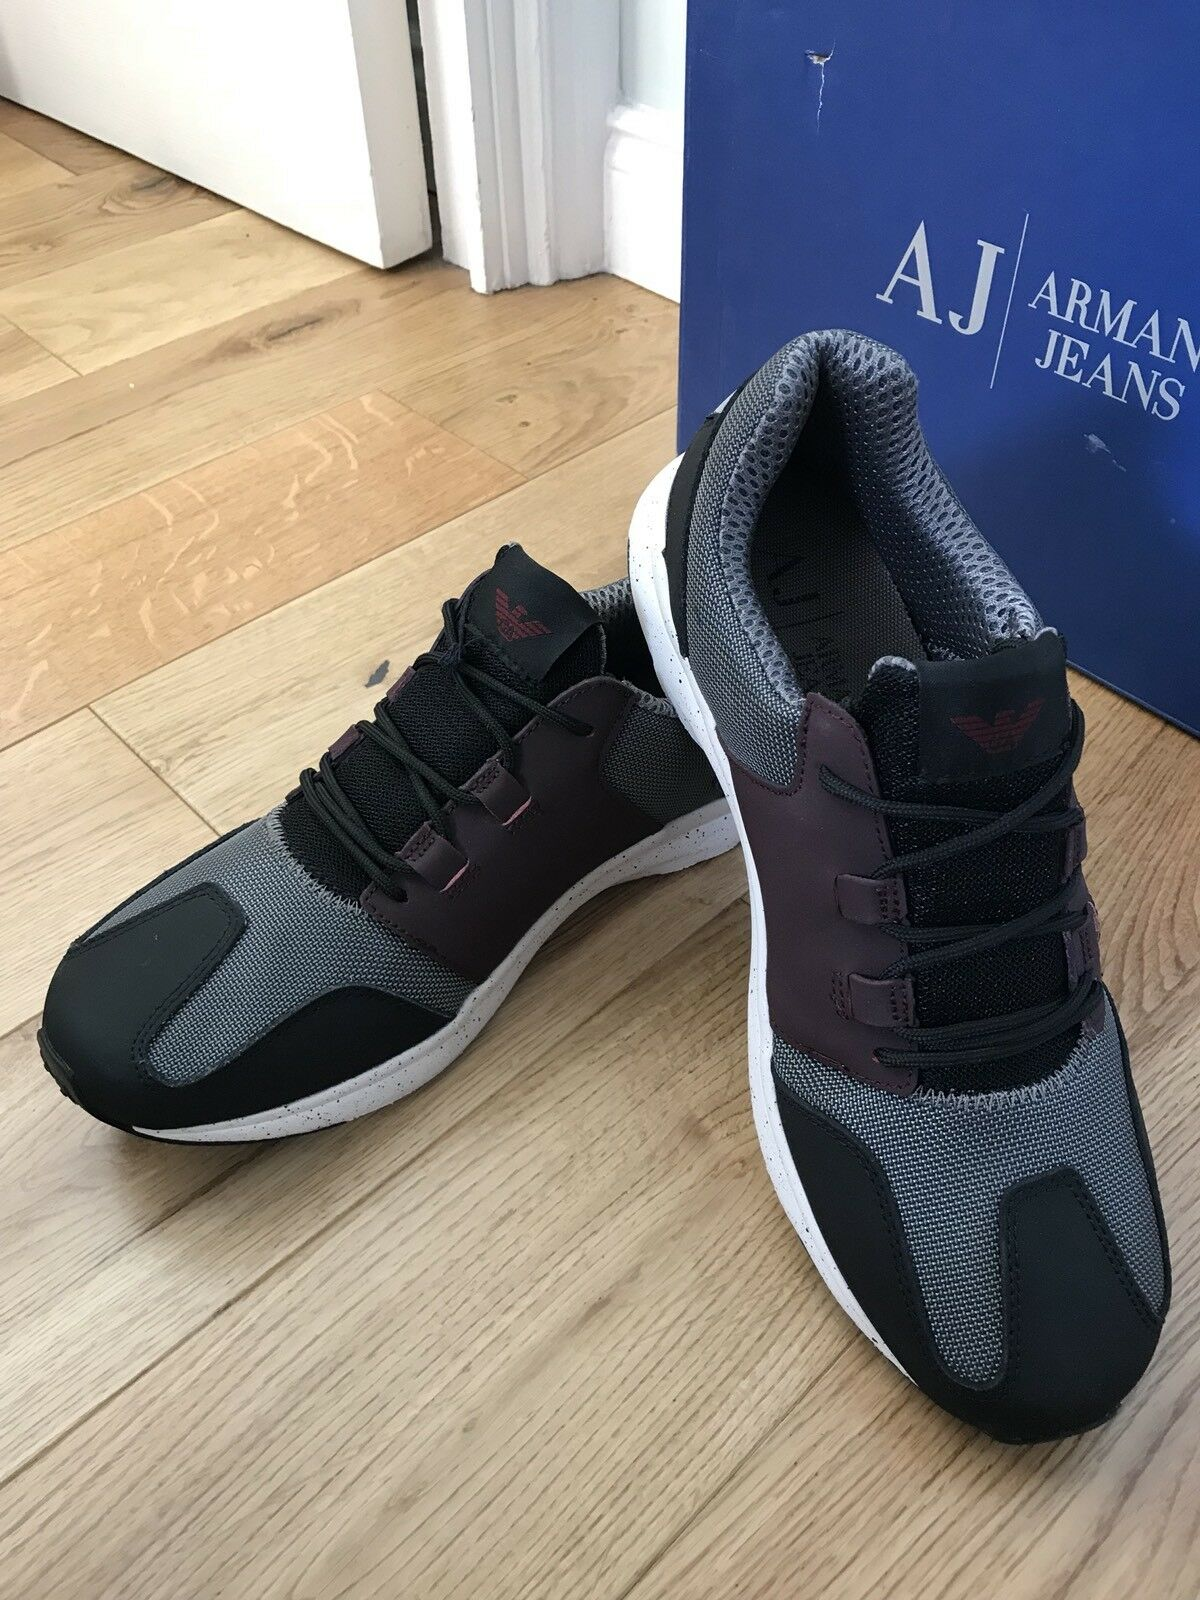 Armani Jeans  Uomo Schuhes Retro Antracite Sneakers Training Schuhes Uomo Uk 10 Eu 44 New db3f45